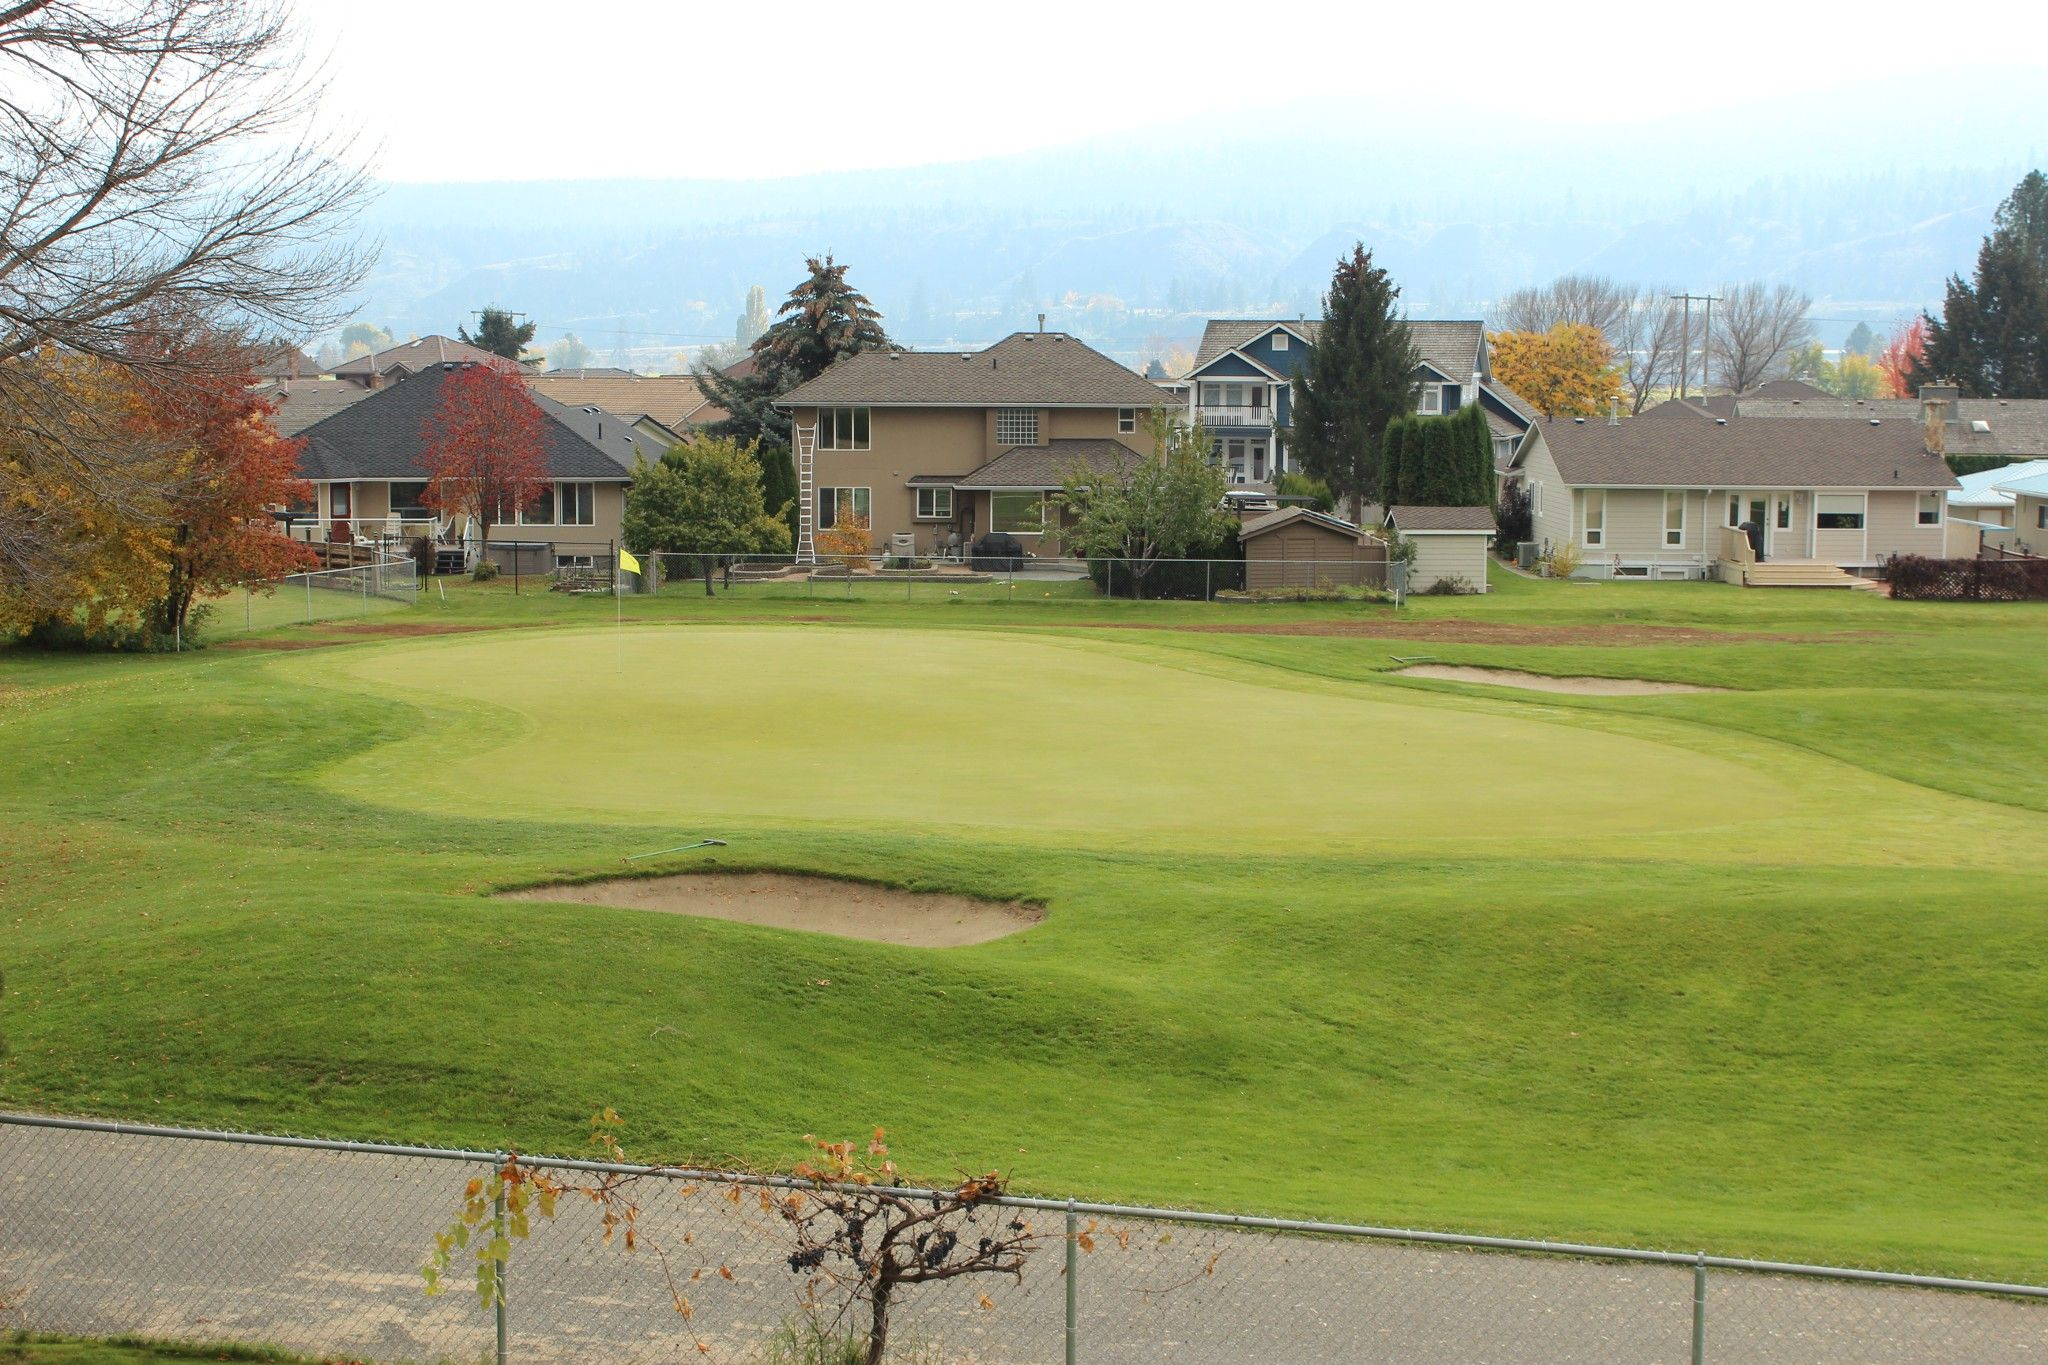 Photo 8: Photos: 3480 Navatanee Drive in Kamloops: South Thompson Valley House for sale : MLS®# 148627